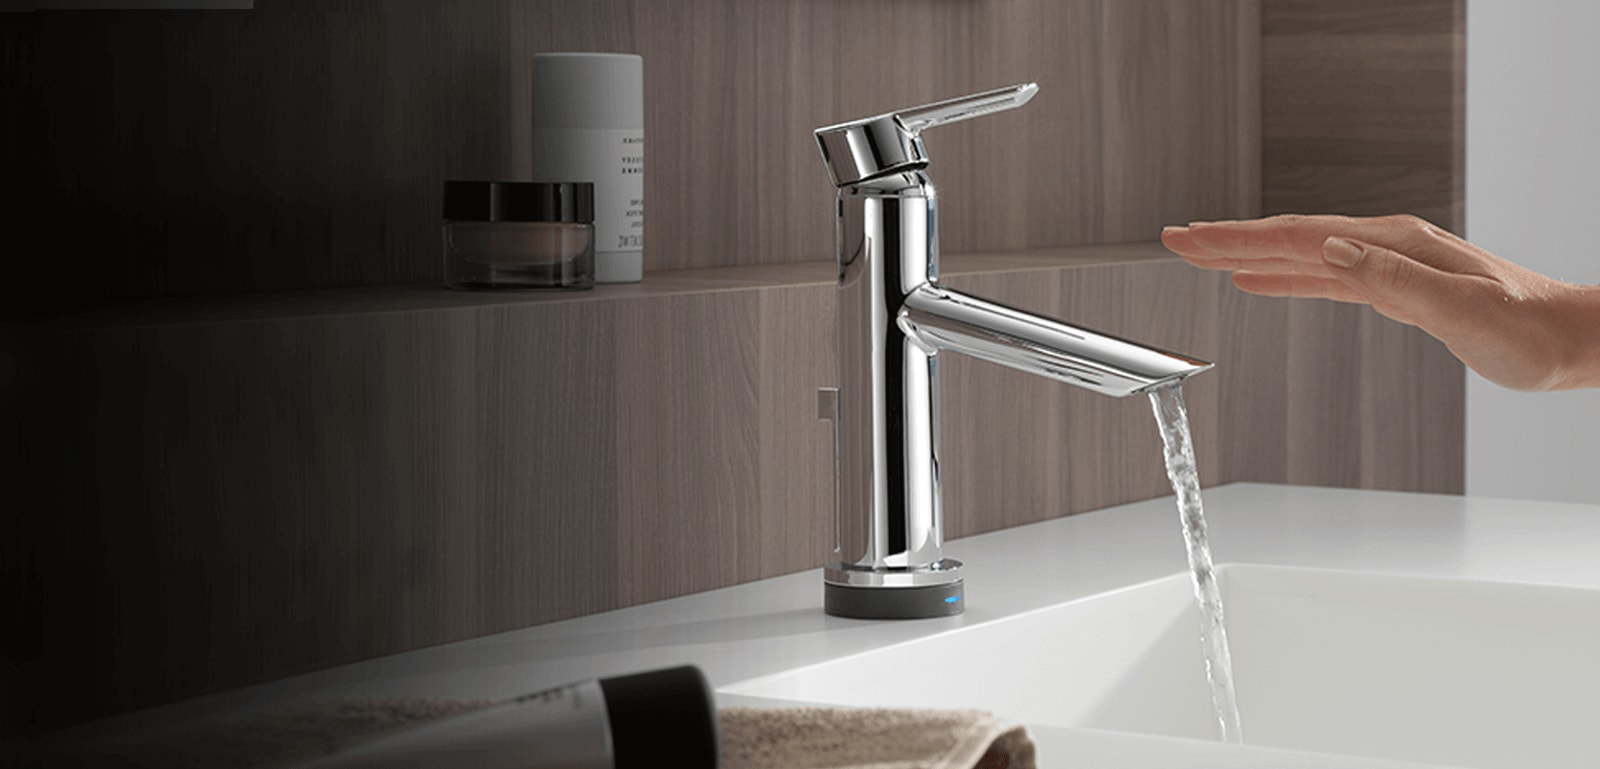 pull single costway motion faucet touchless down product shop dual spray chrome kitchen sense rakuten handle